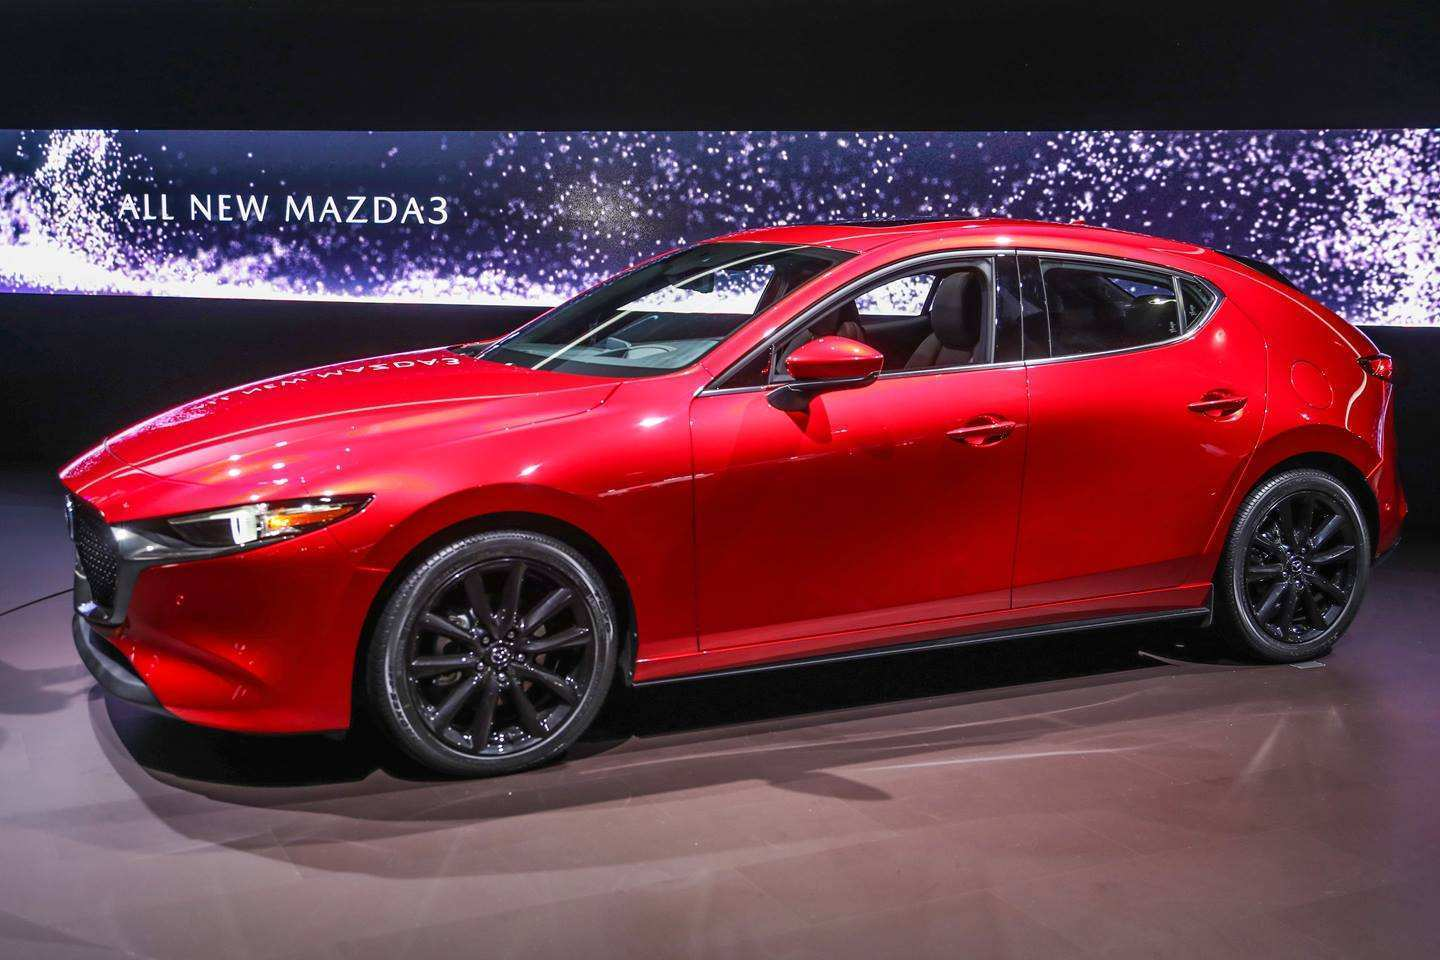 17 Best Review Best Mazda 3 2019 Price Release Date Price And Review Performance and New Engine with Best Mazda 3 2019 Price Release Date Price And Review